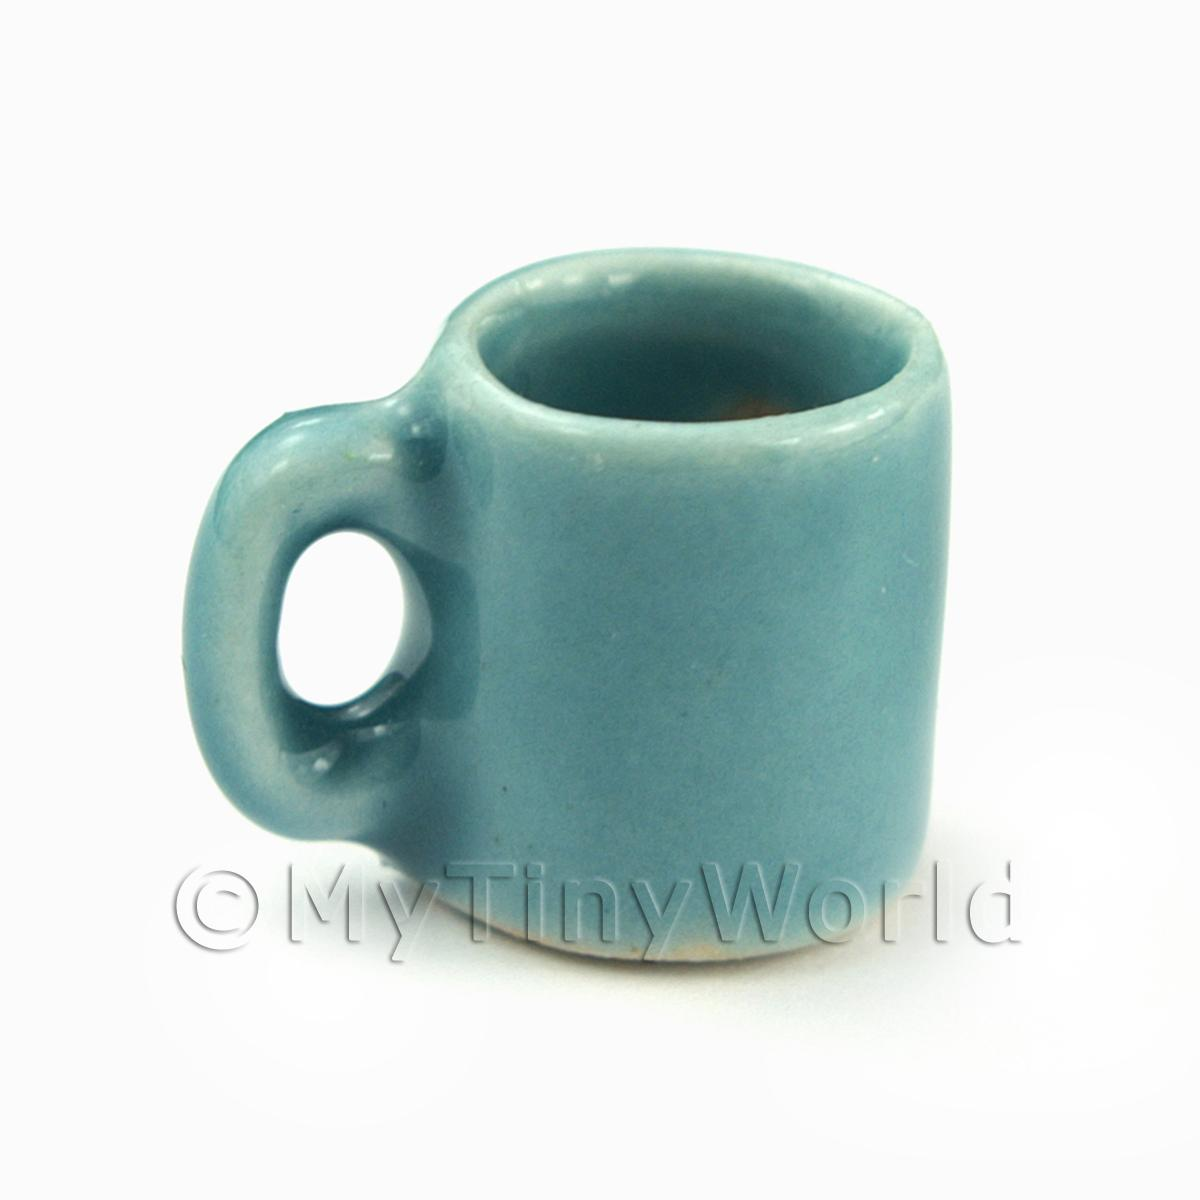 Miniature 11mm Aquamarine Ceramic Coffee Mug